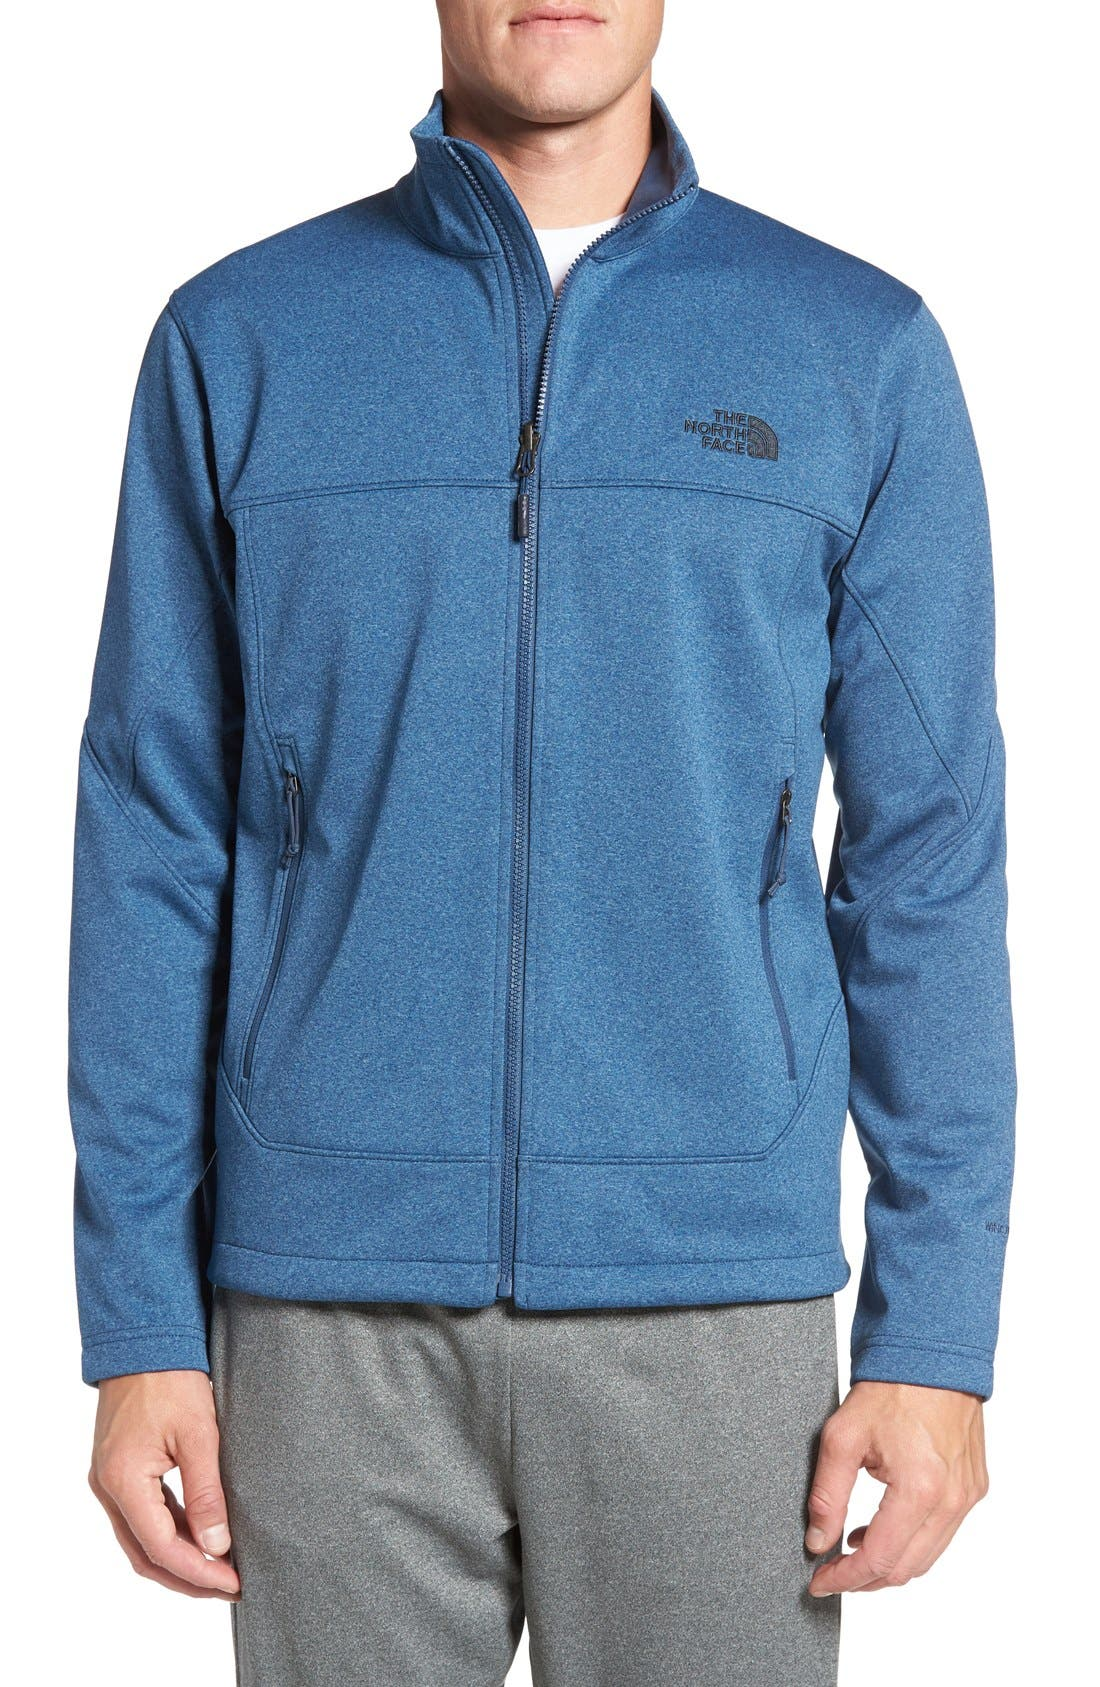 Alternate Image 1 Selected - The North Face 'Canyonwall' Fleece Jacket